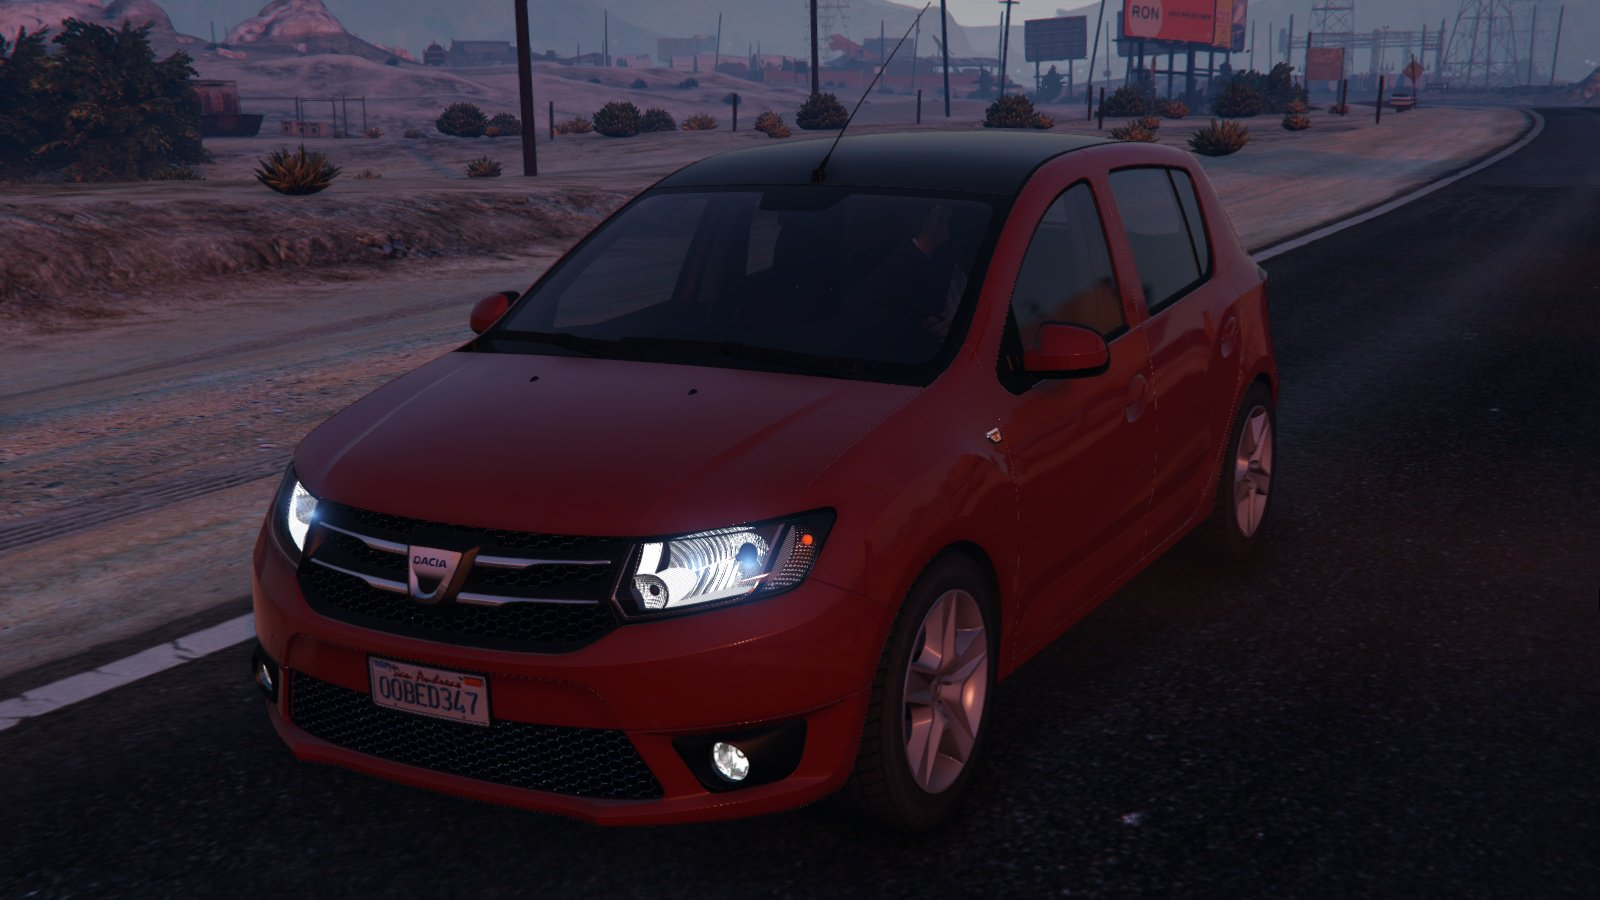 dacia sandero 2014 gta 5. Black Bedroom Furniture Sets. Home Design Ideas